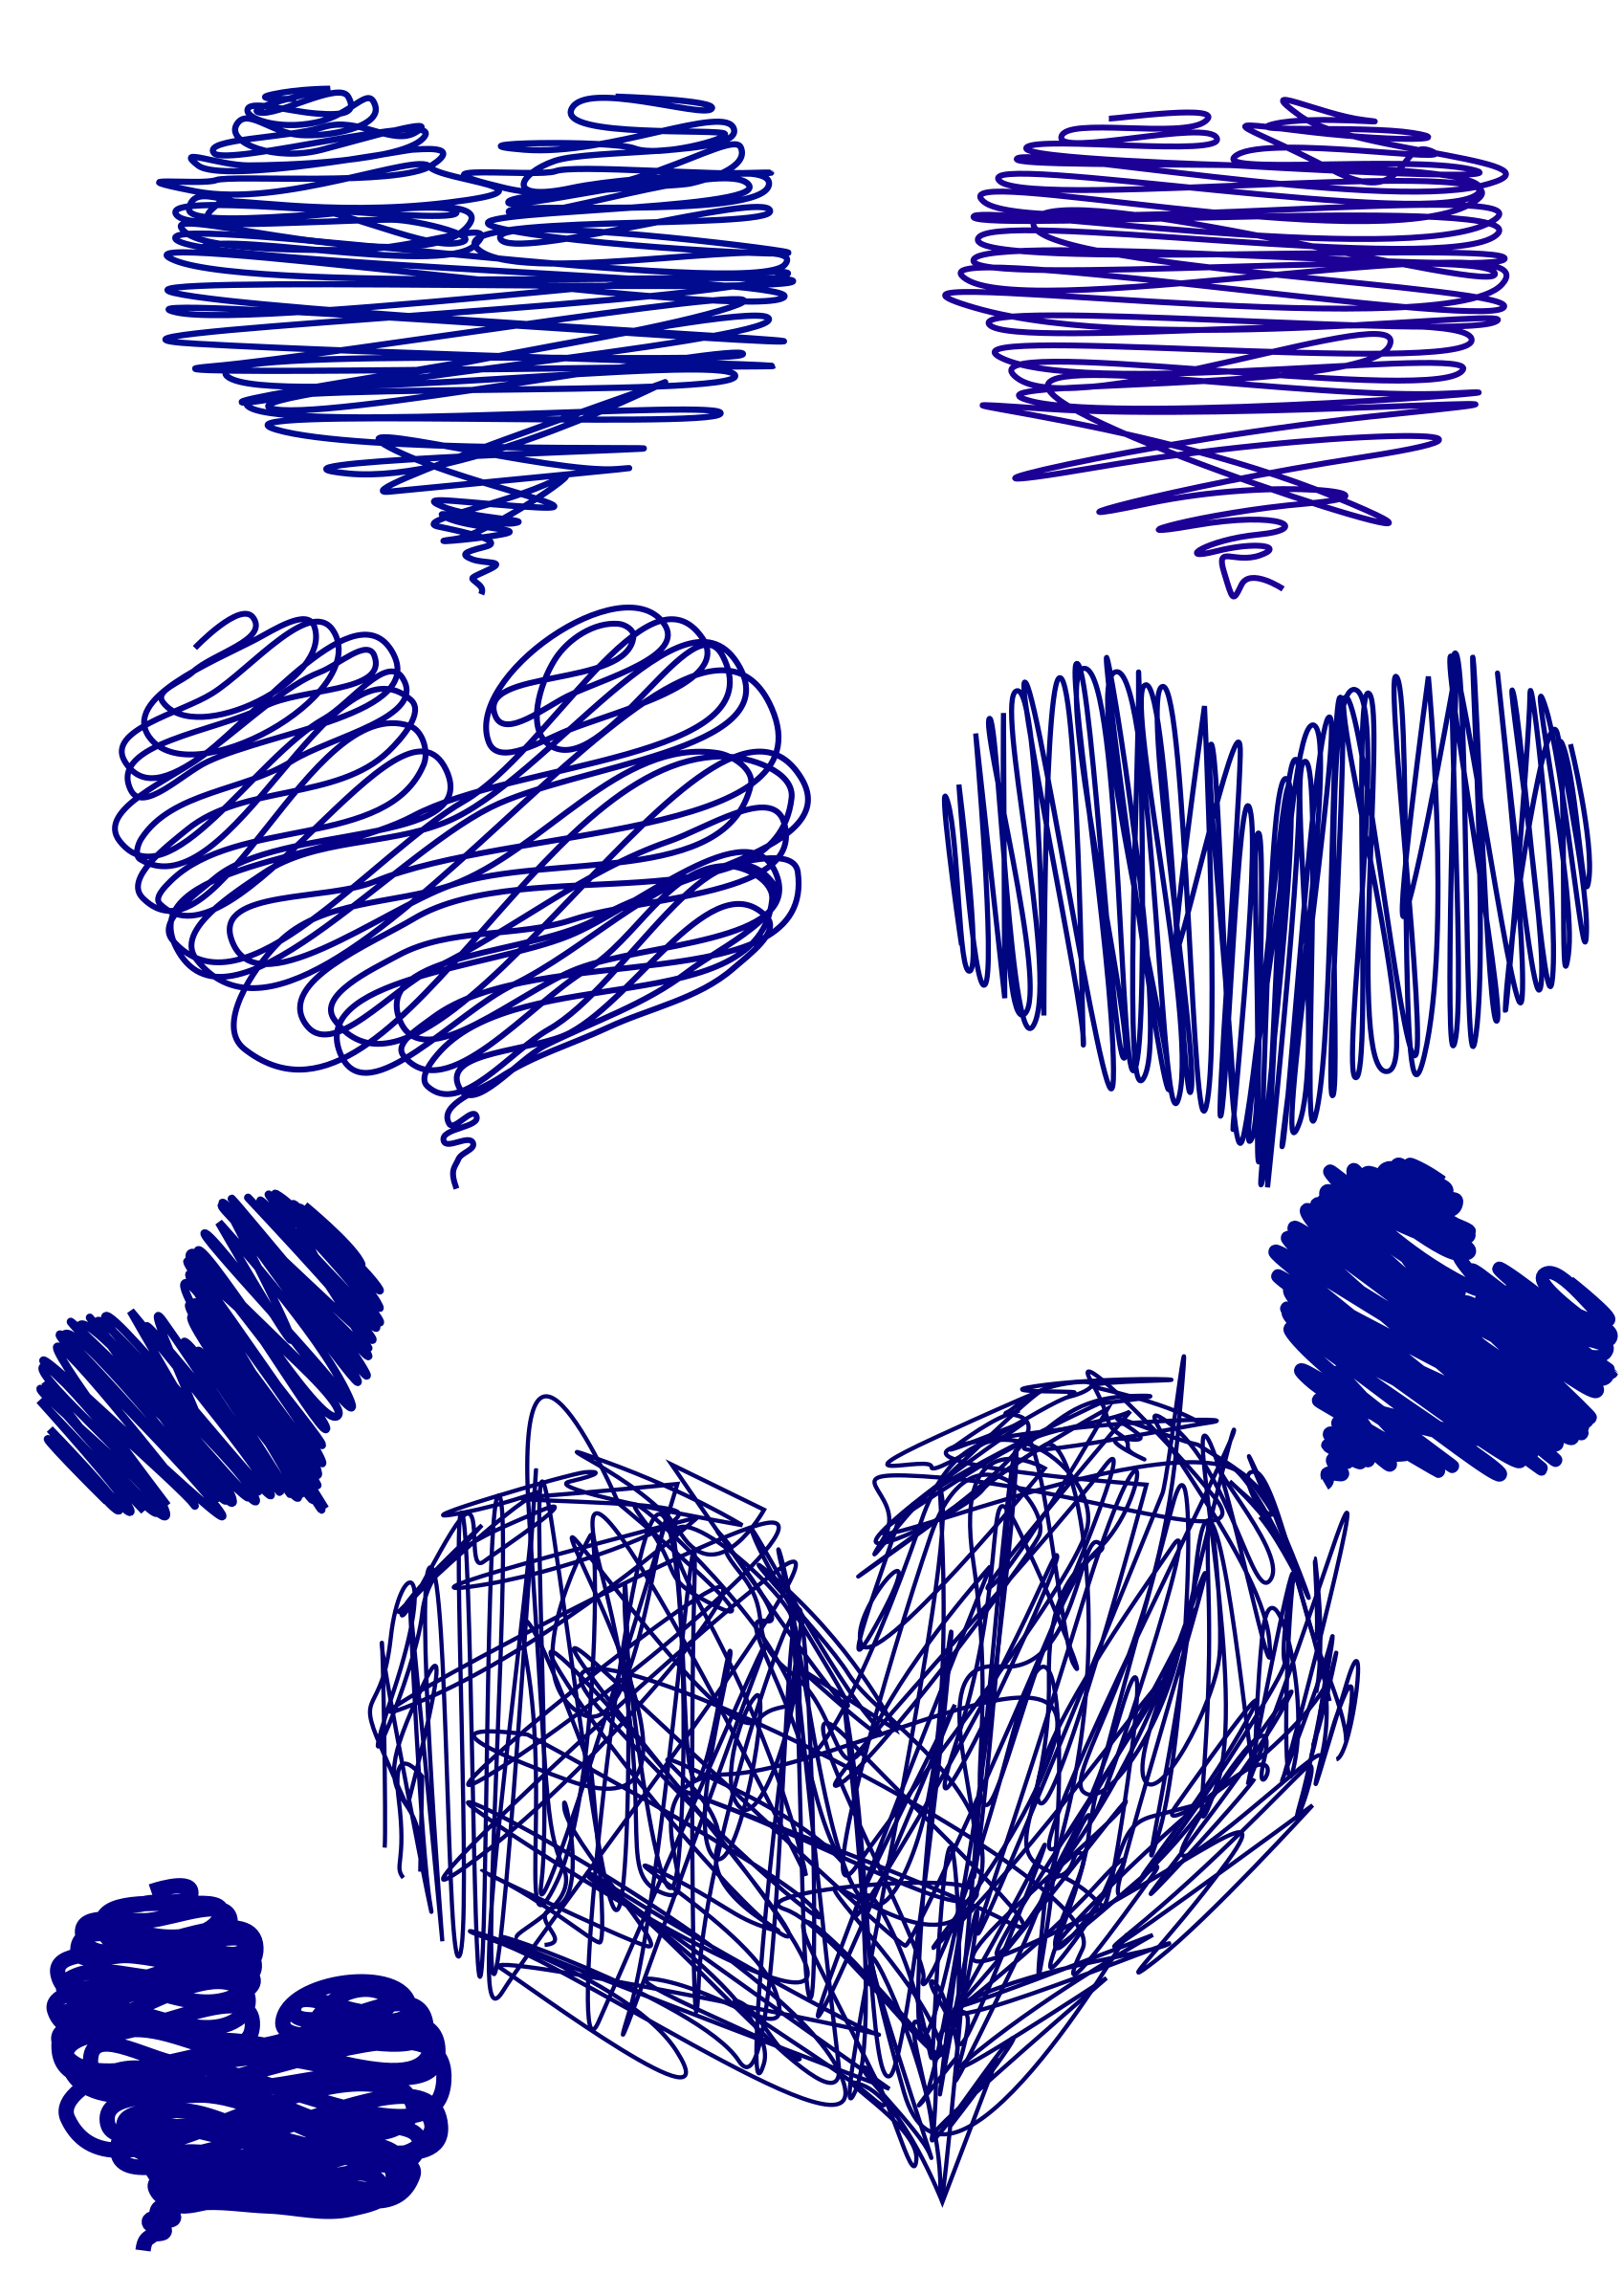 blue hand drawn Heart by Ana.